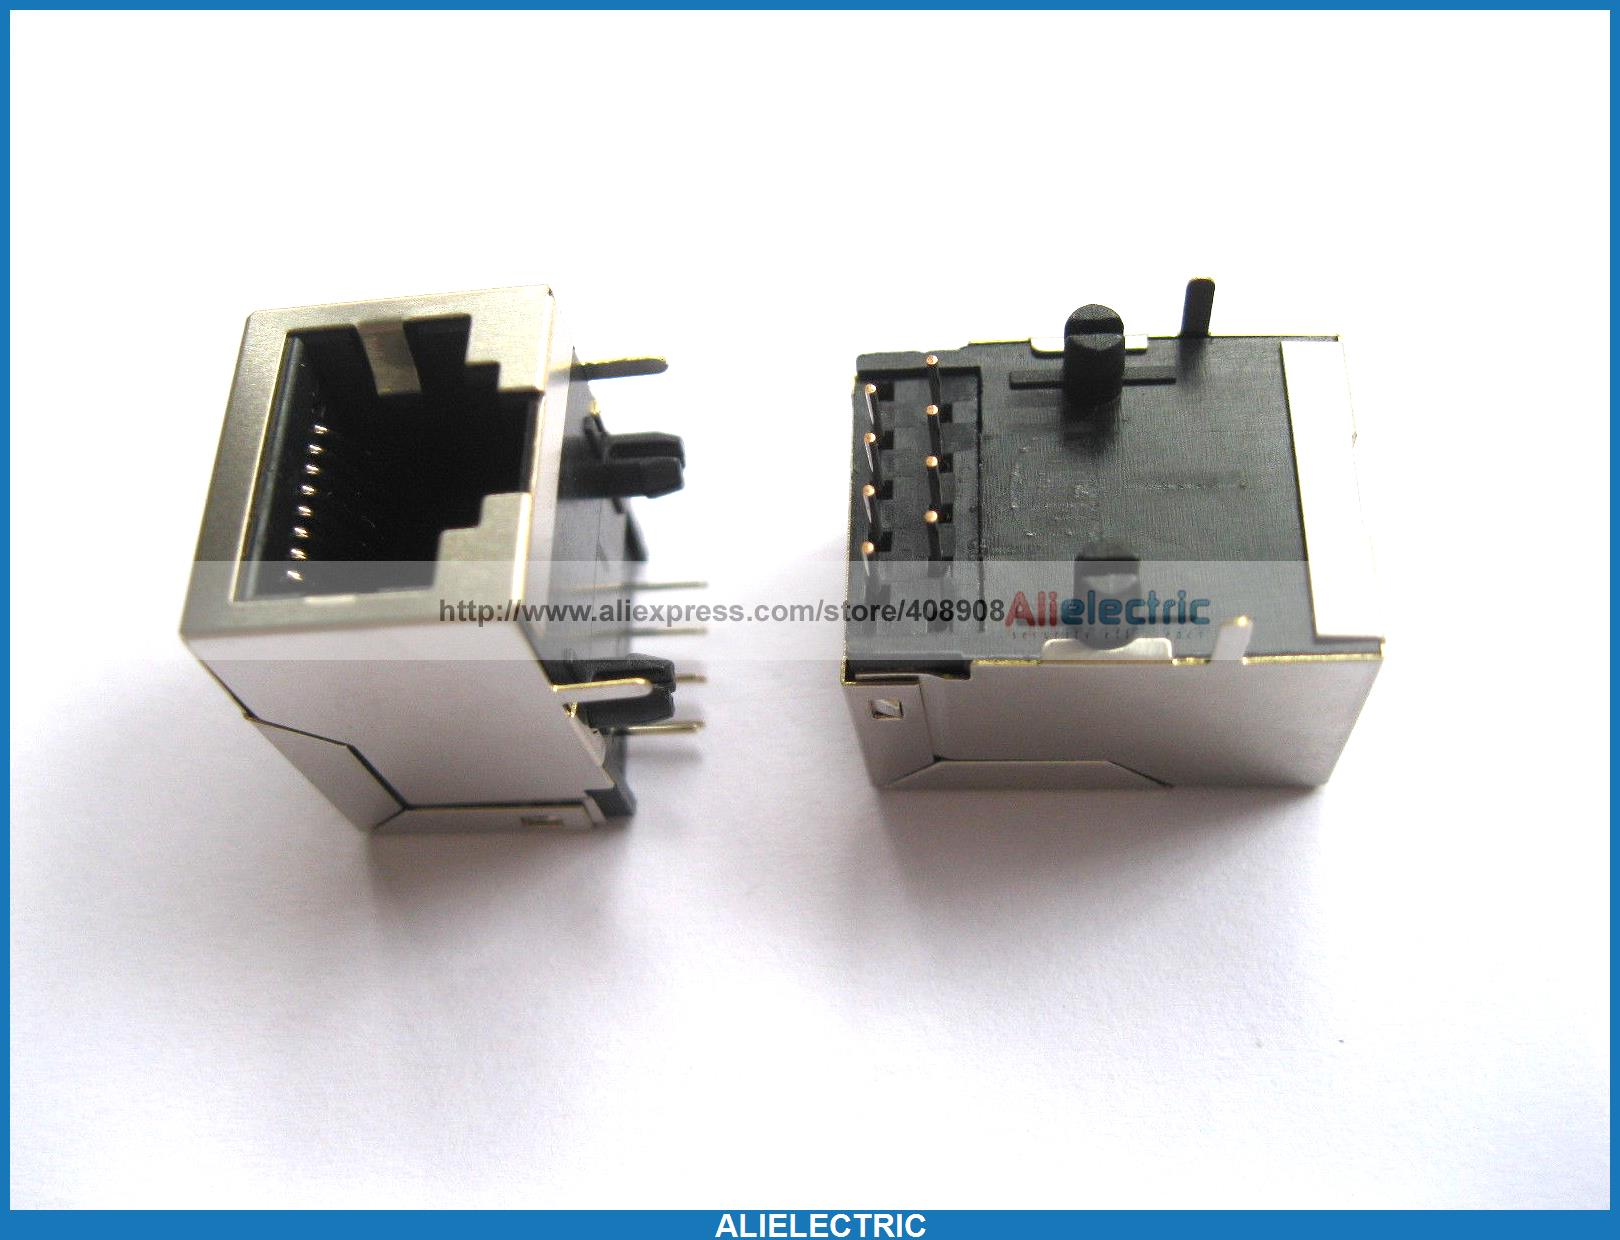 50 Pcs RJ45 Modular Network PCB Jack 59 8P LAN Connector network socket hr 911105 c brand new goods in stock network transformer 59 8 p 8 c bring lamp bring shrapnel rj 45